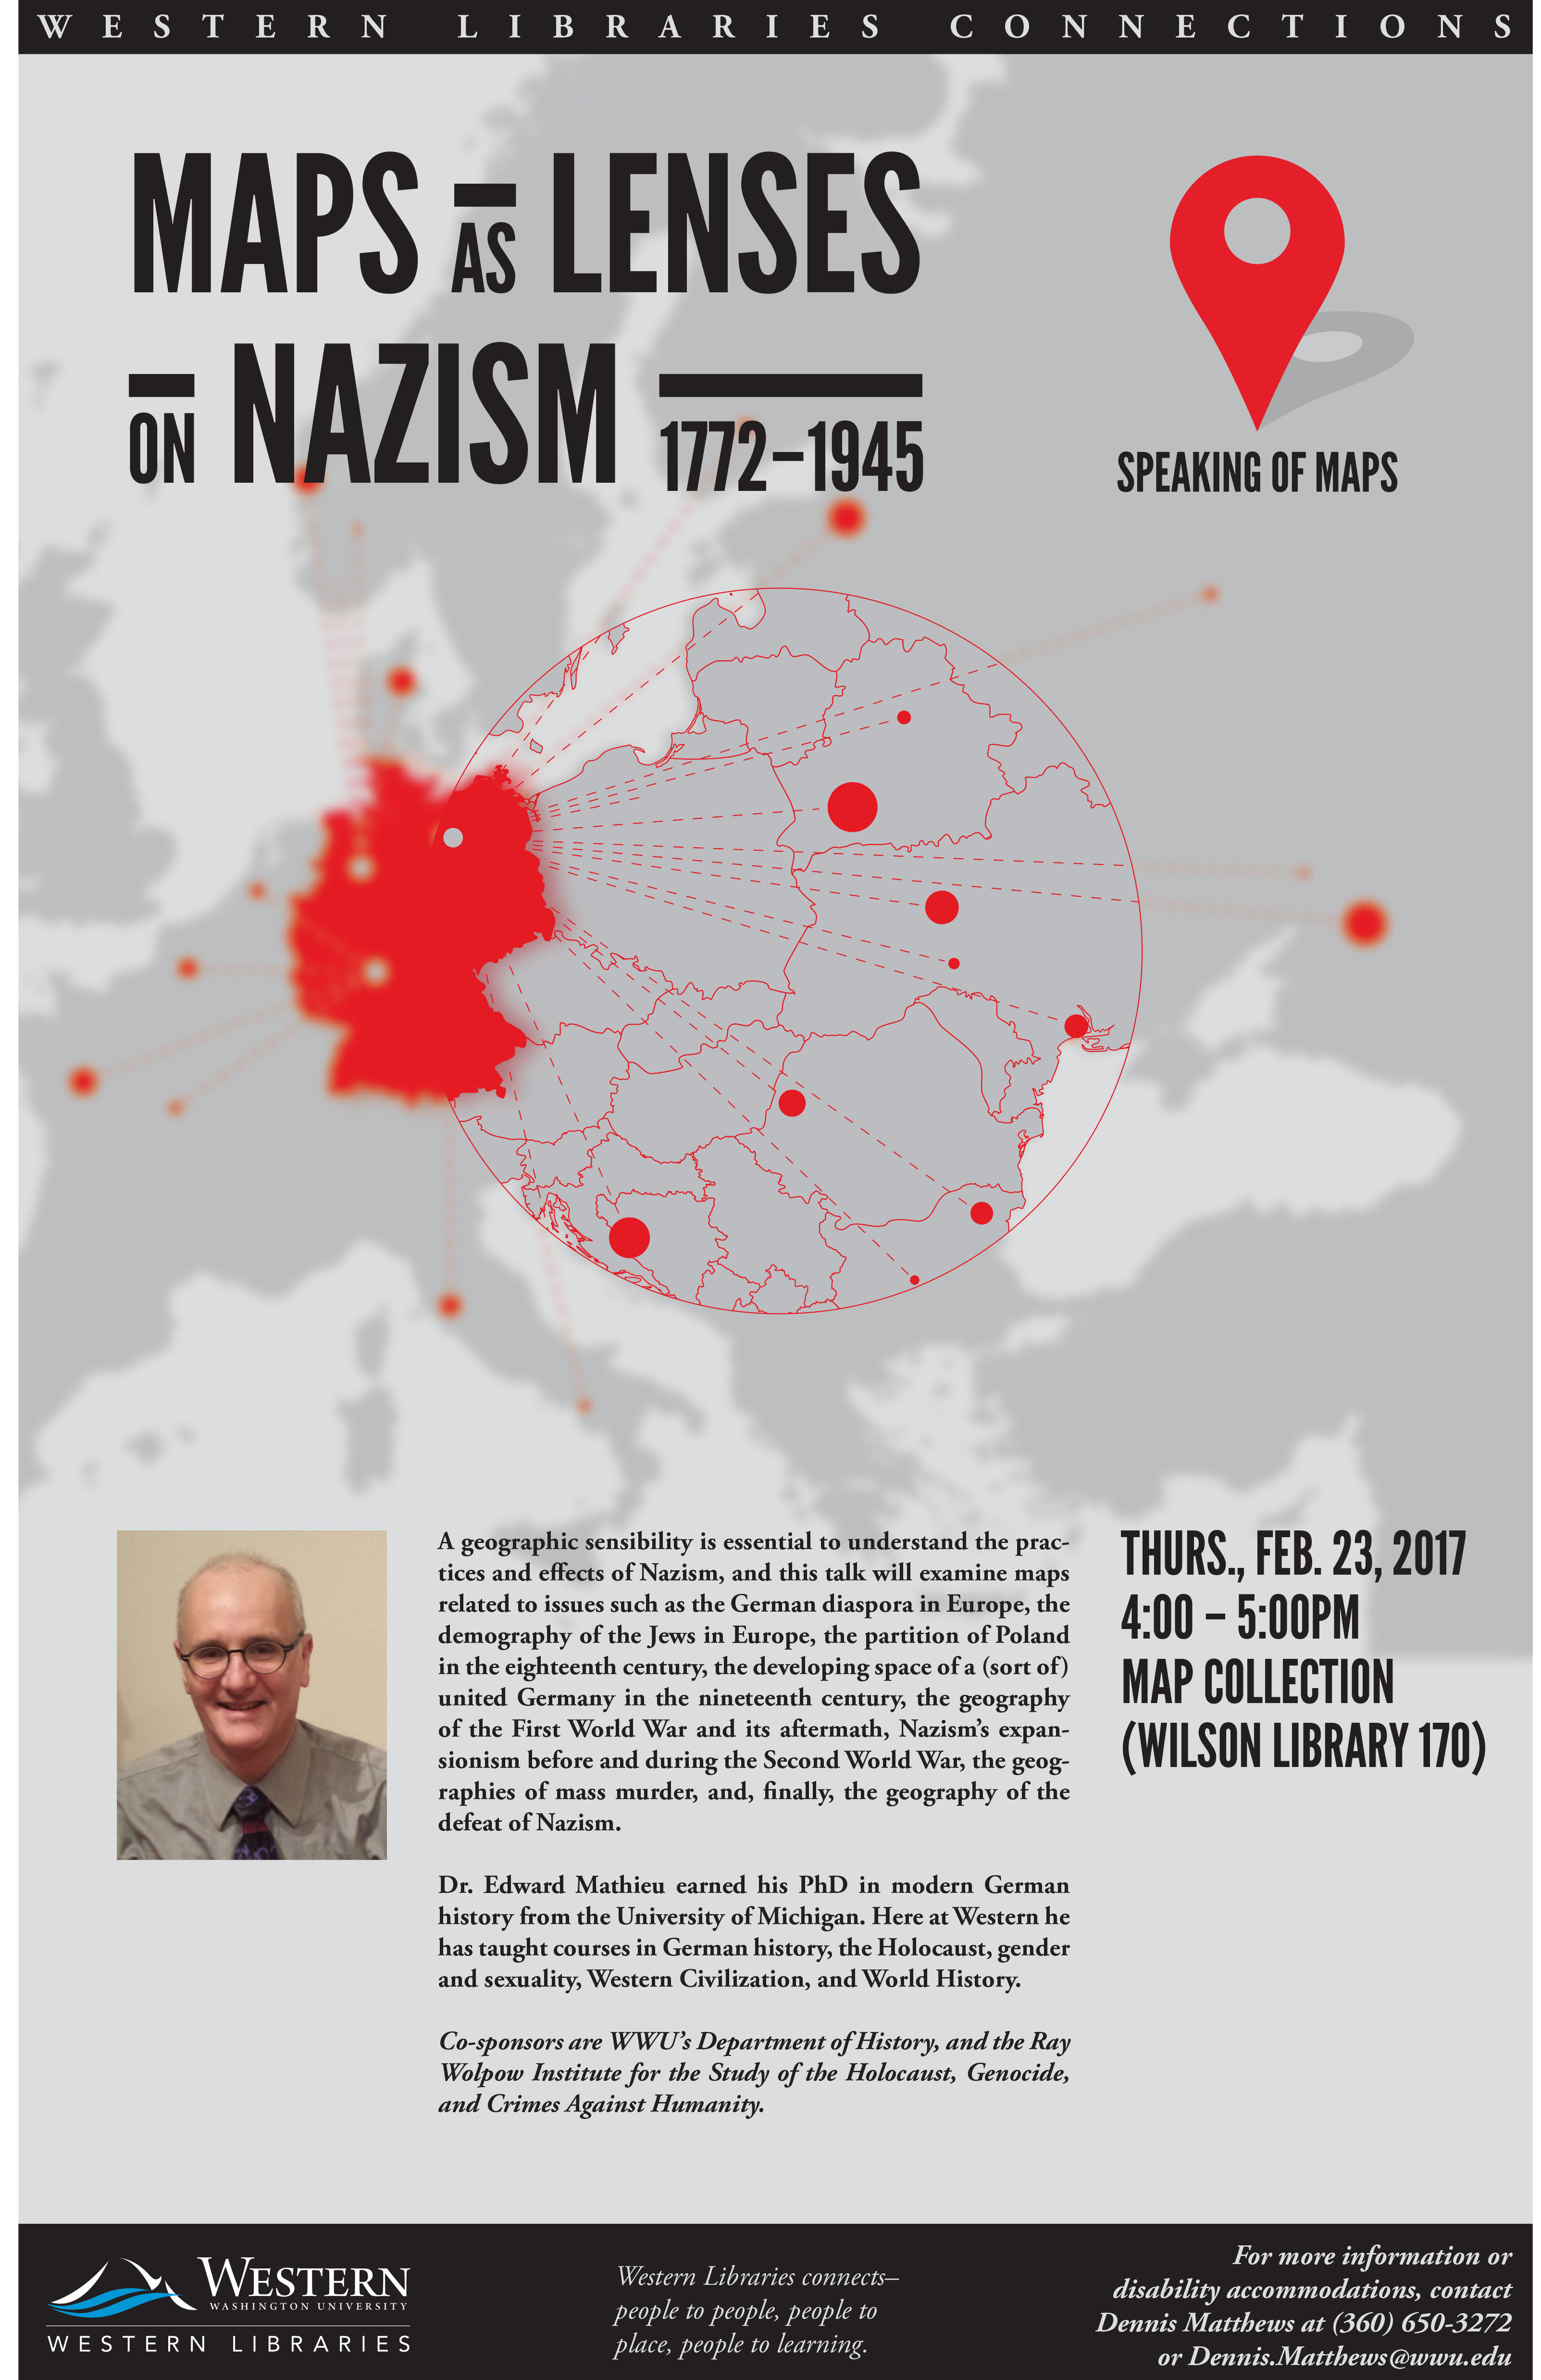 Maps as Lenses on Nazism